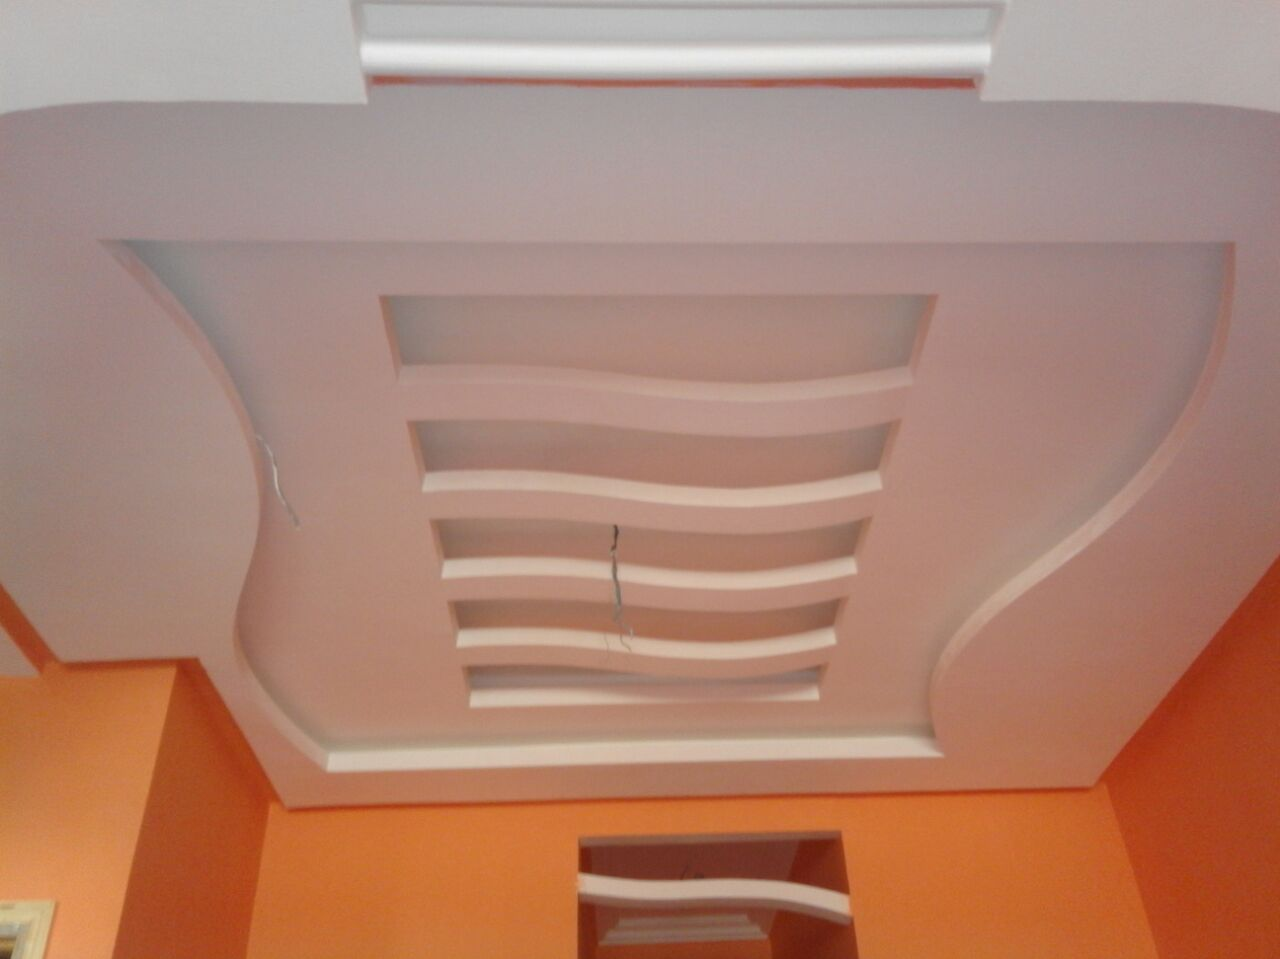 Placoplatre Decoration Plafond Tous Travaux De Placo Platre Et Decor A Tanger Constracotanger